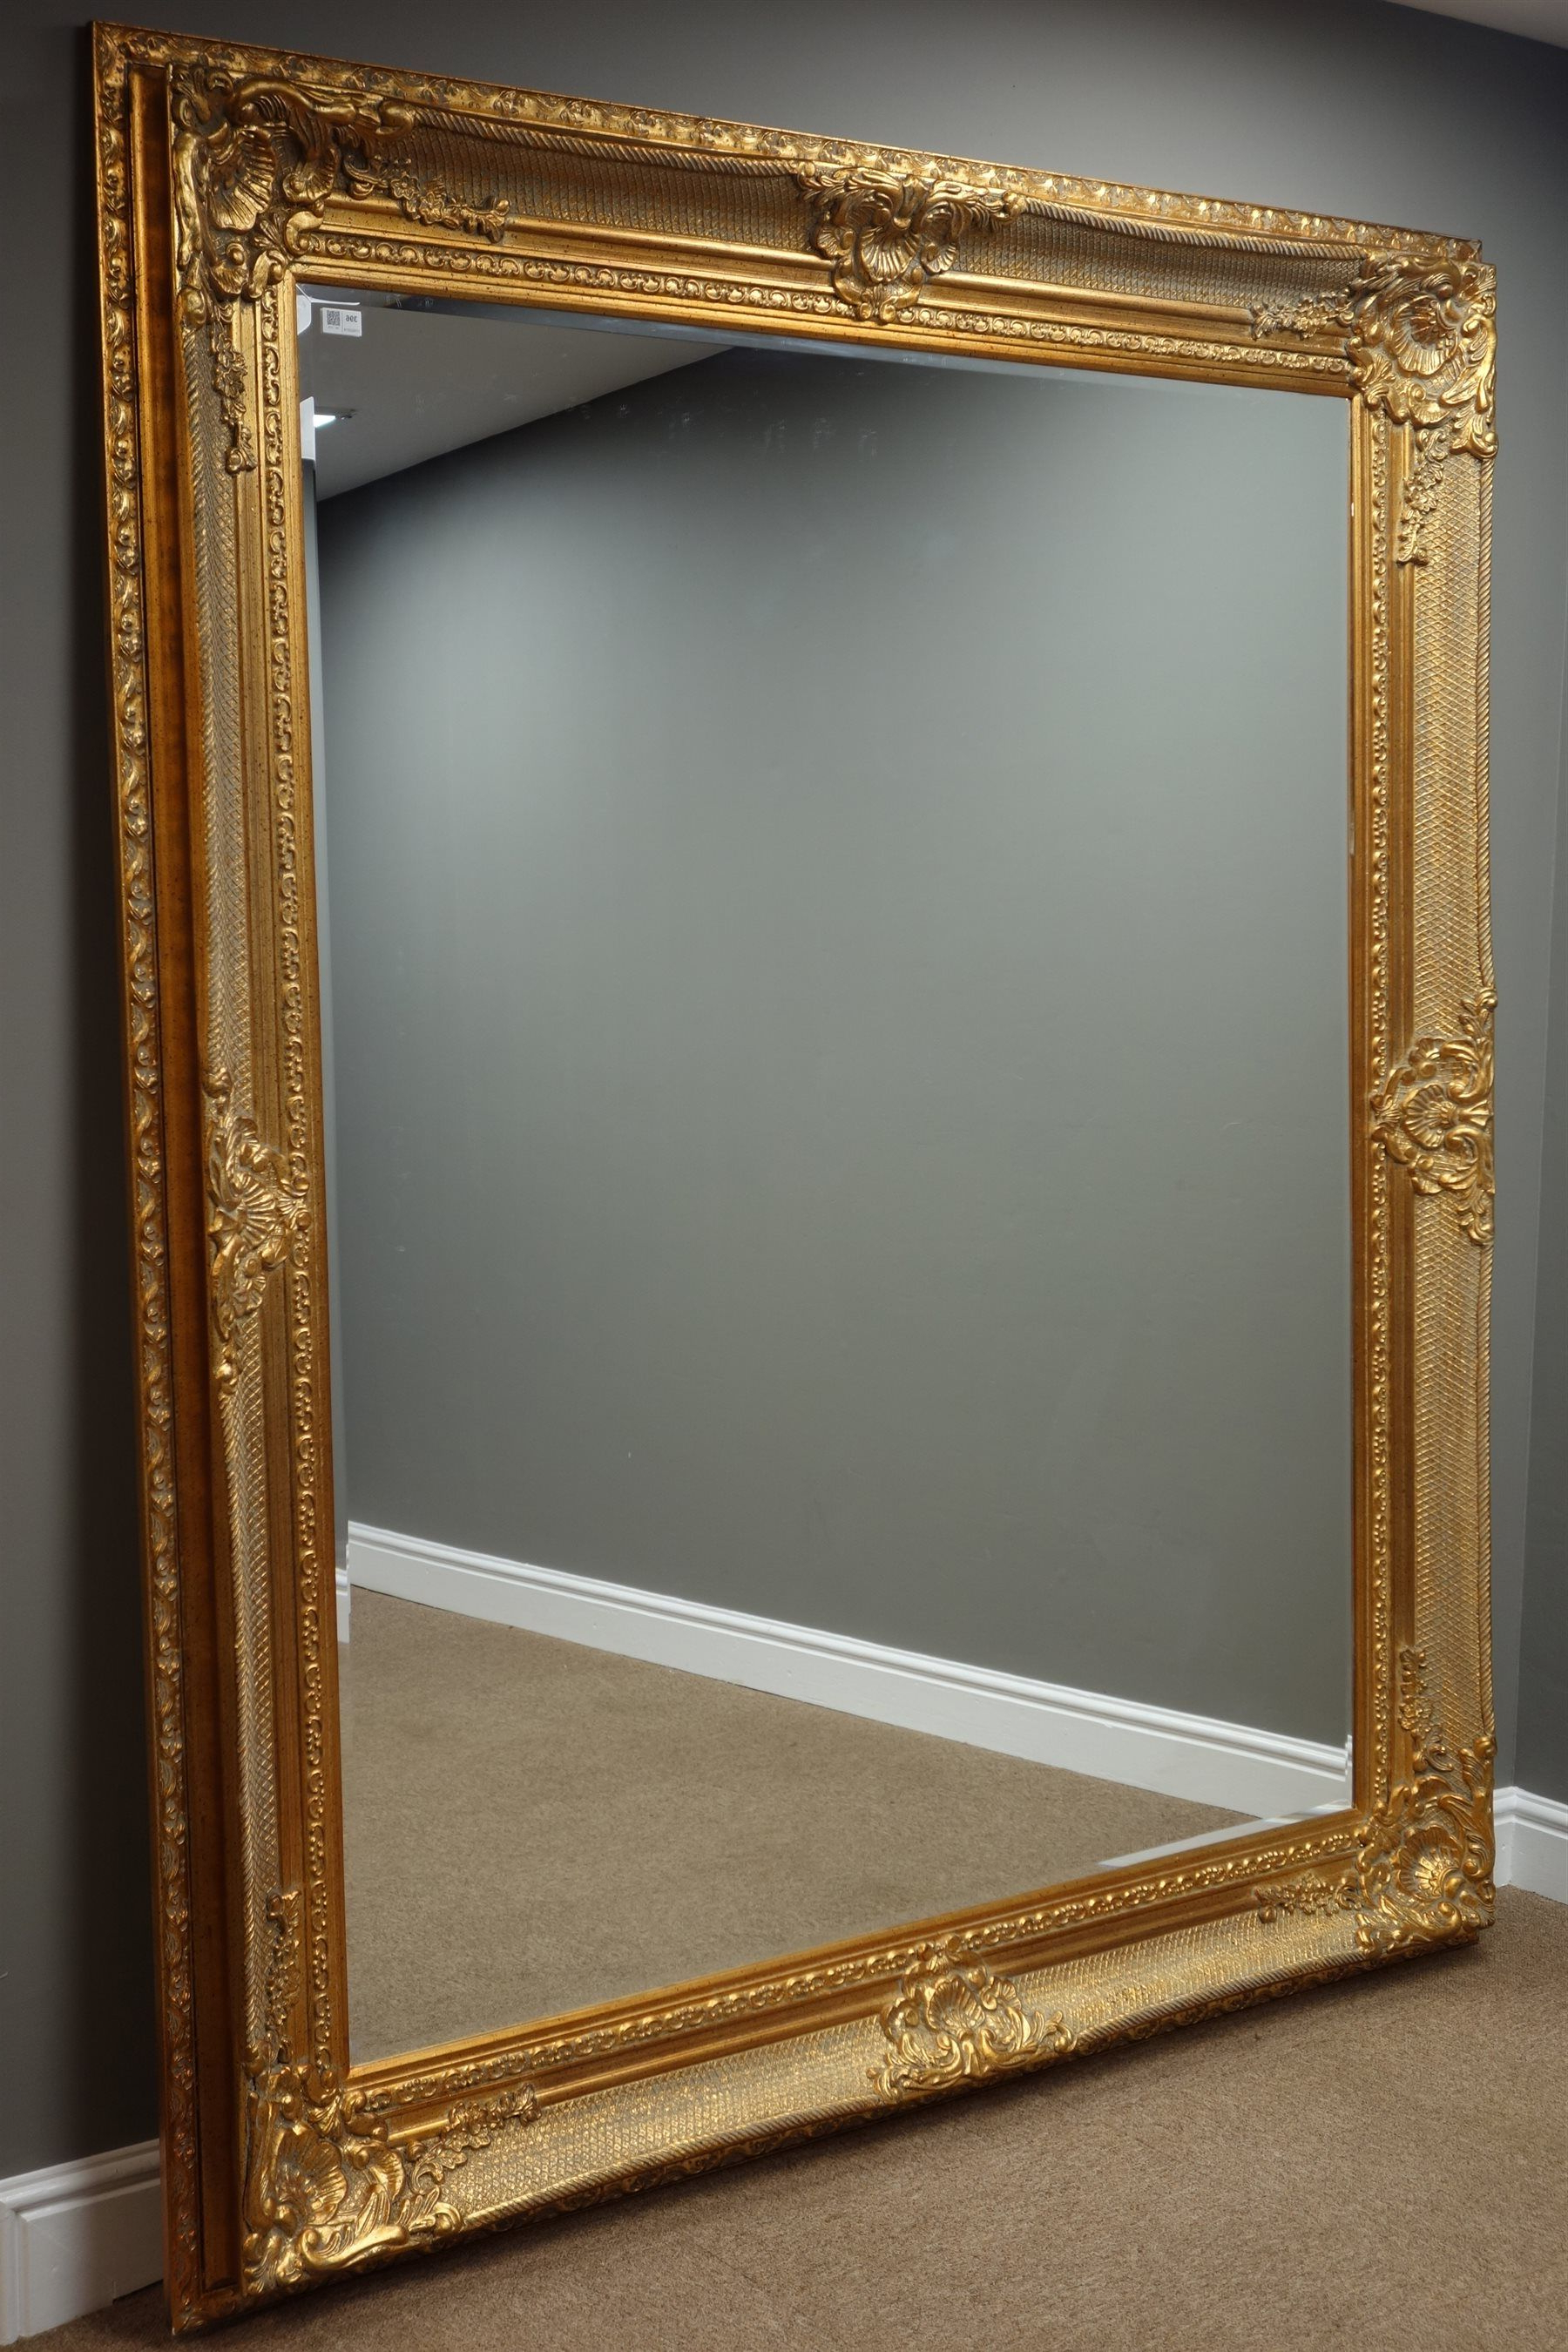 Gold Framed Wall Mirrors Throughout 2020 Large Rectangular Bevelled Edge Wall Mirror In Ornate Swept (View 11 of 20)